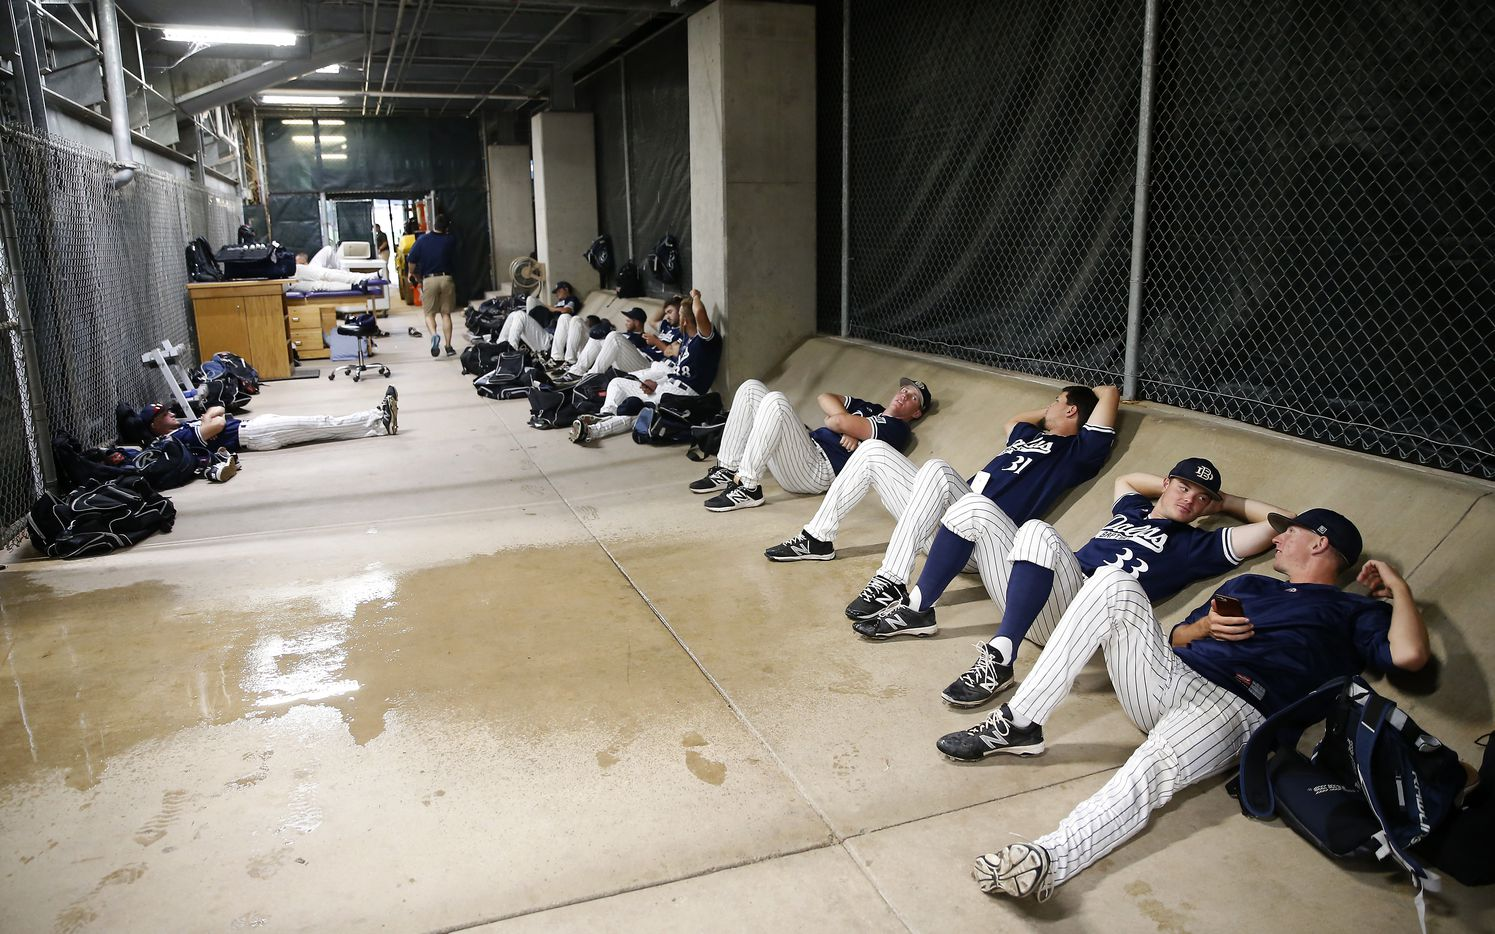 Dallas Baptist players wait under the stand during a rain delay in the NCAA Fort Worth Regional game against Virginia at Lupton Stadium in Fort Worth, Texas, Friday, June 2, 2017. (Jae S. Lee/The Dallas Morning News)